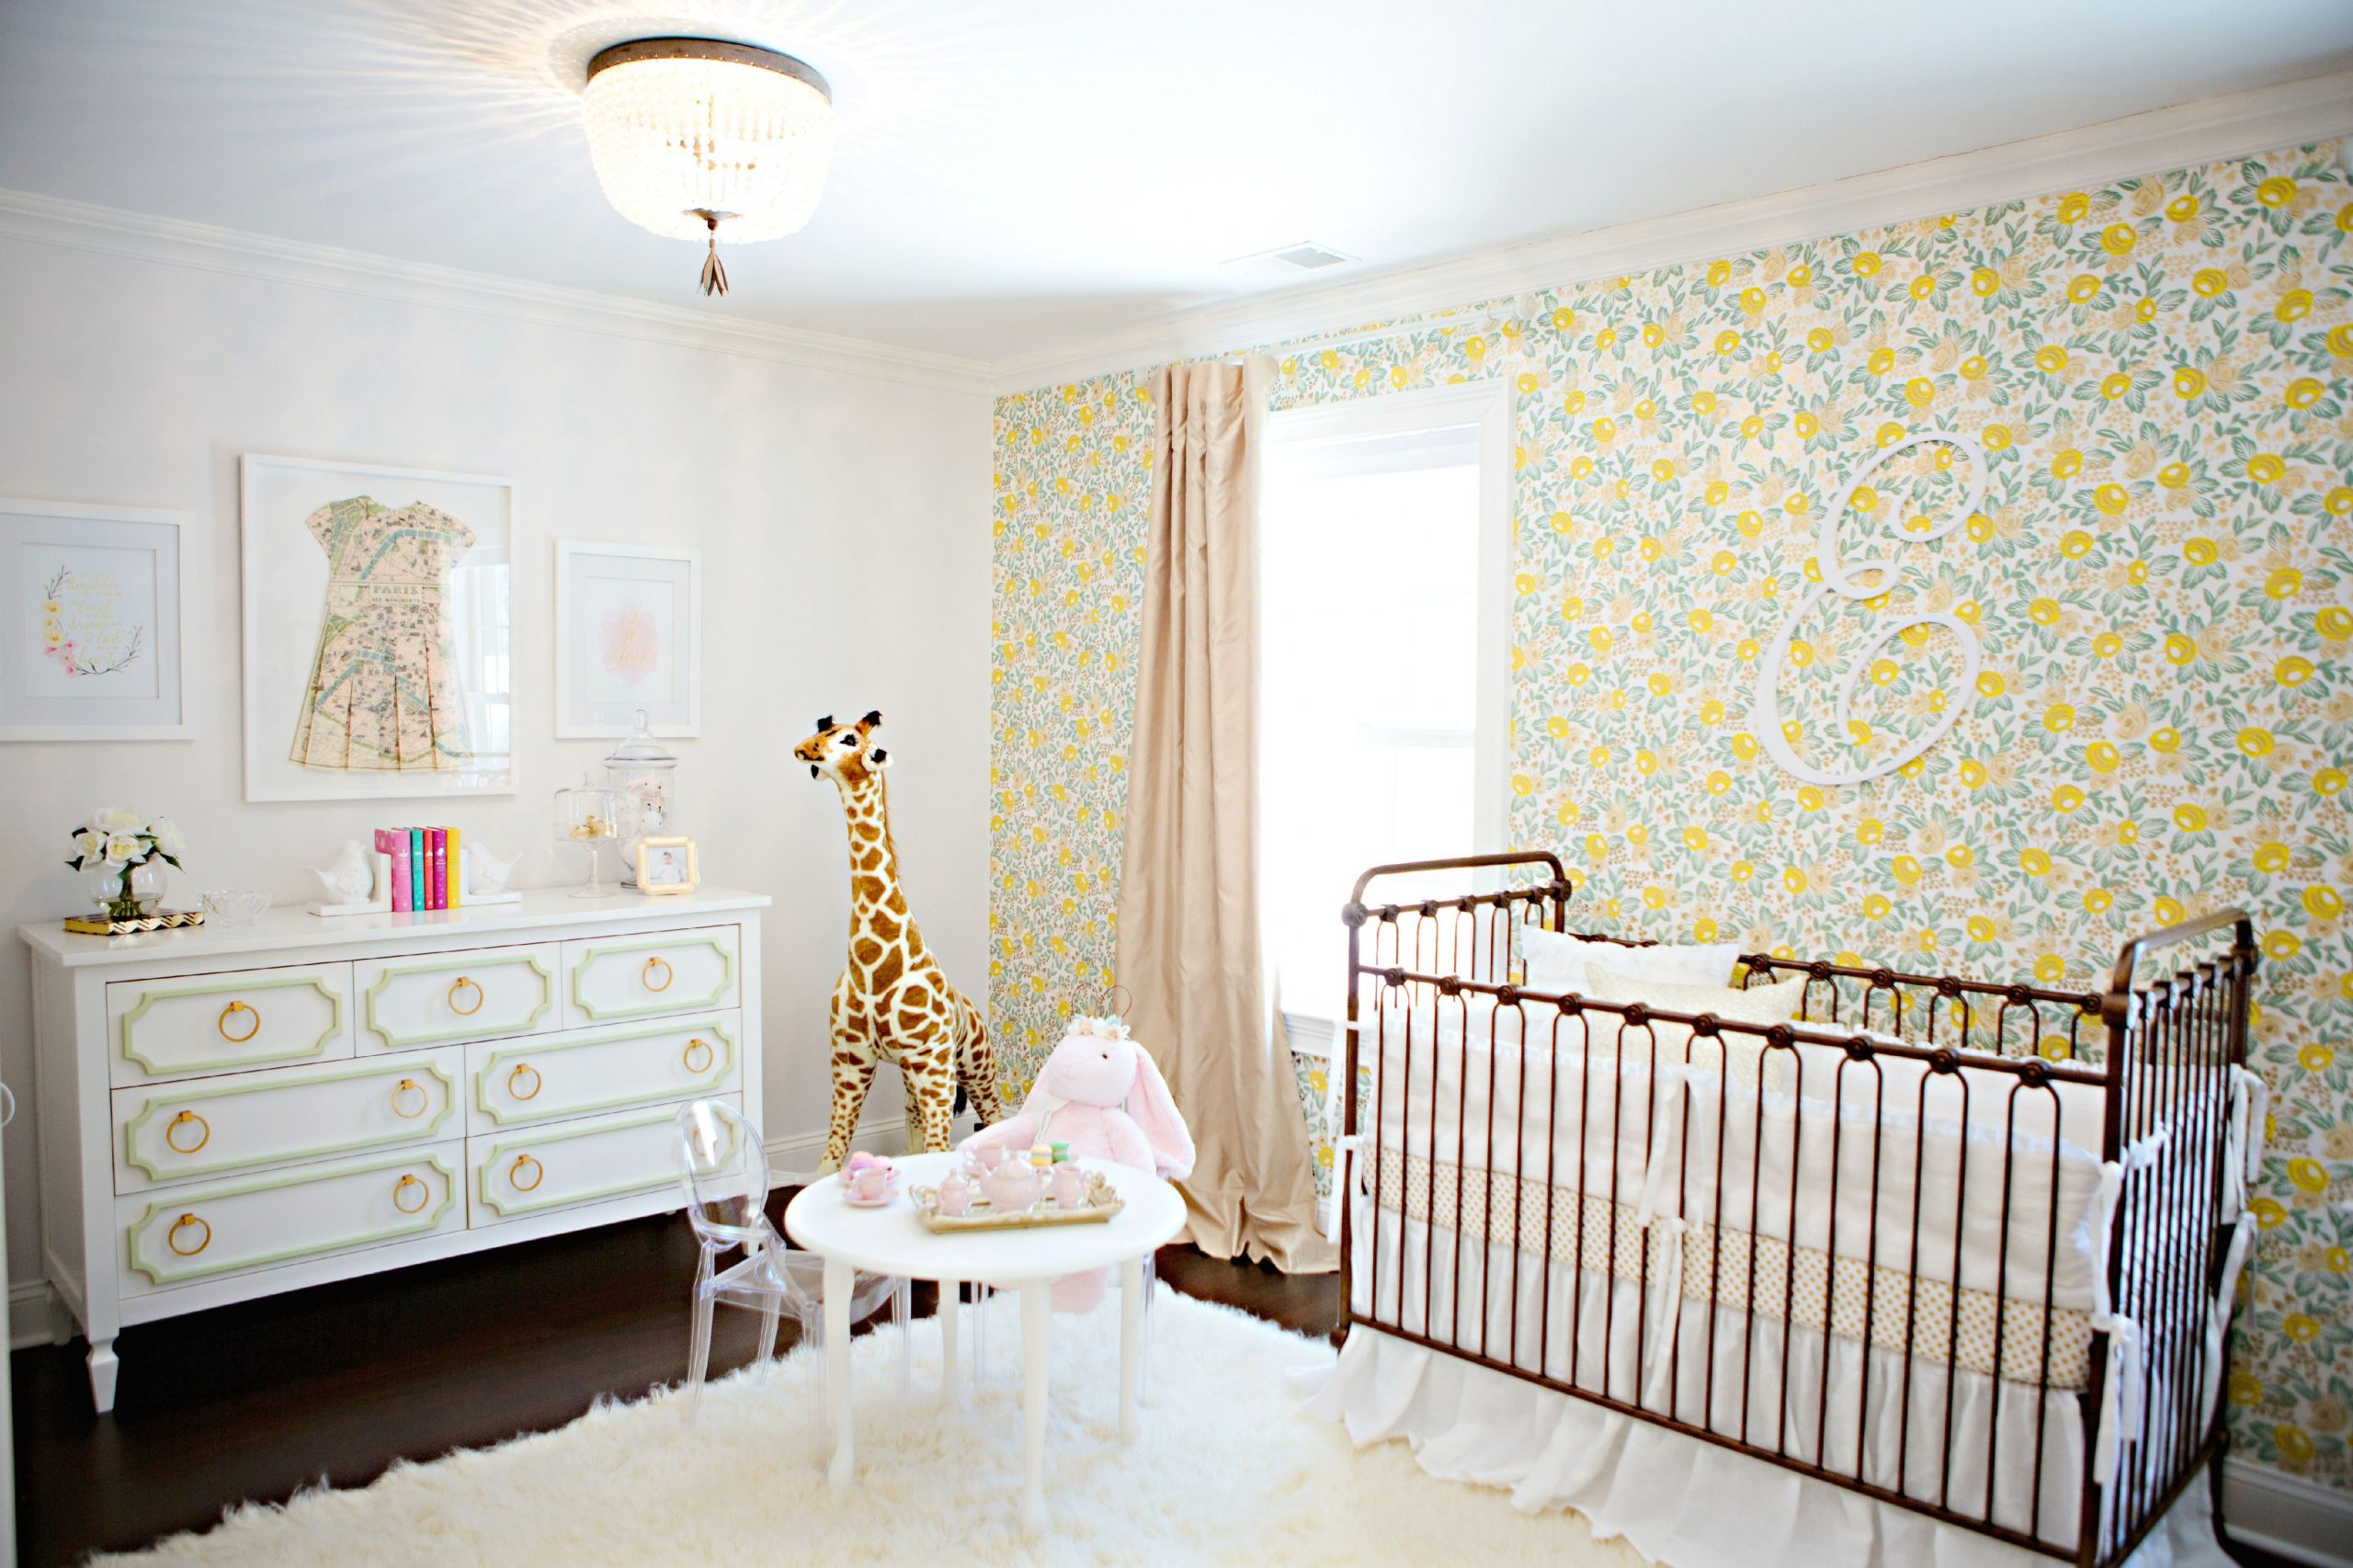 When You Post Your Dream Nursery Online - Project Nursery  Baby  - Baby Room Yellow